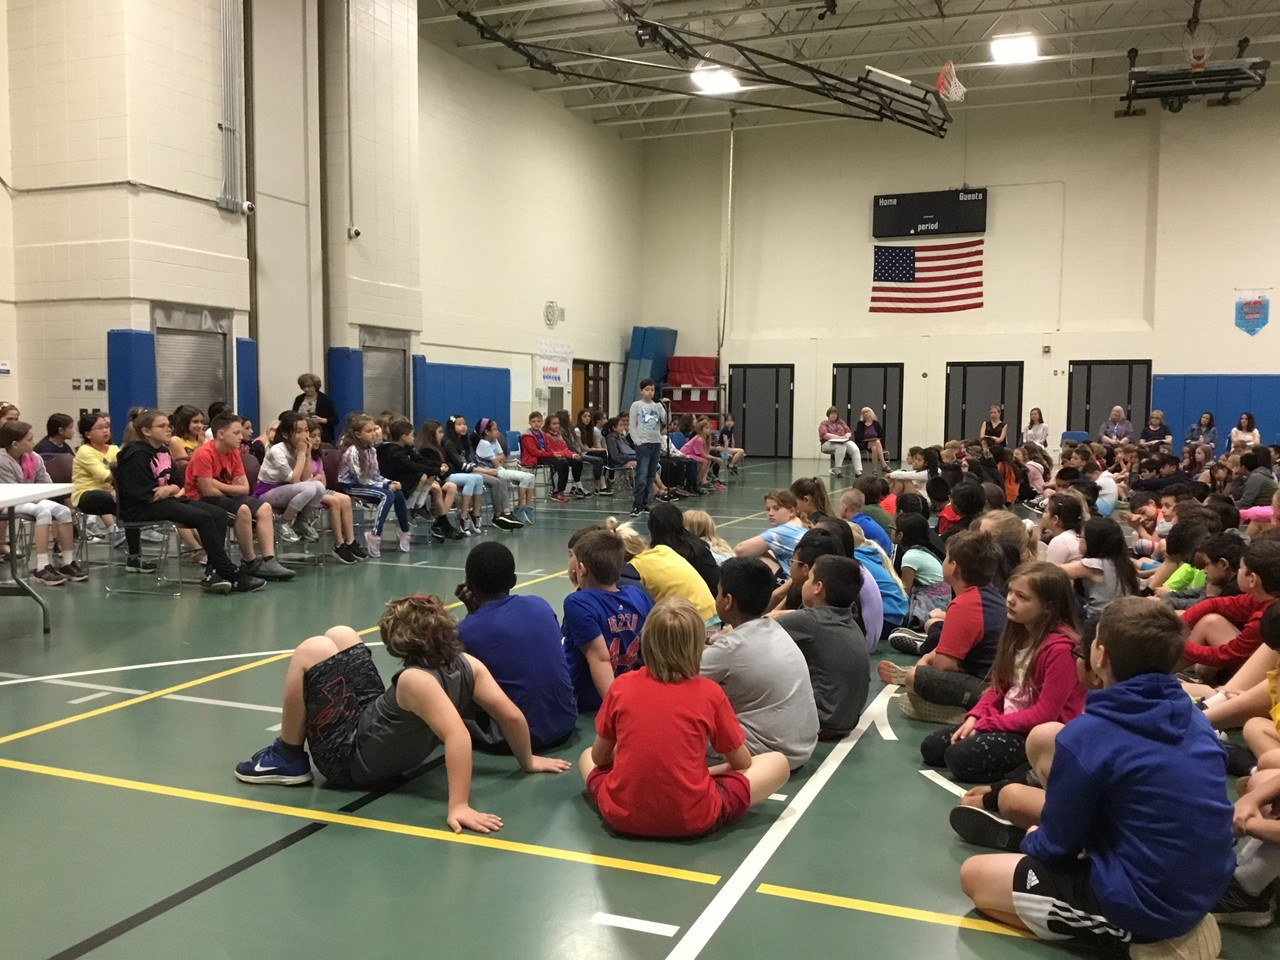 End of the year spelling bee assembly. Students are sitting on the floor in the gym and students (contestants) are sitting in chairs preparing to spell in the spelling bee.